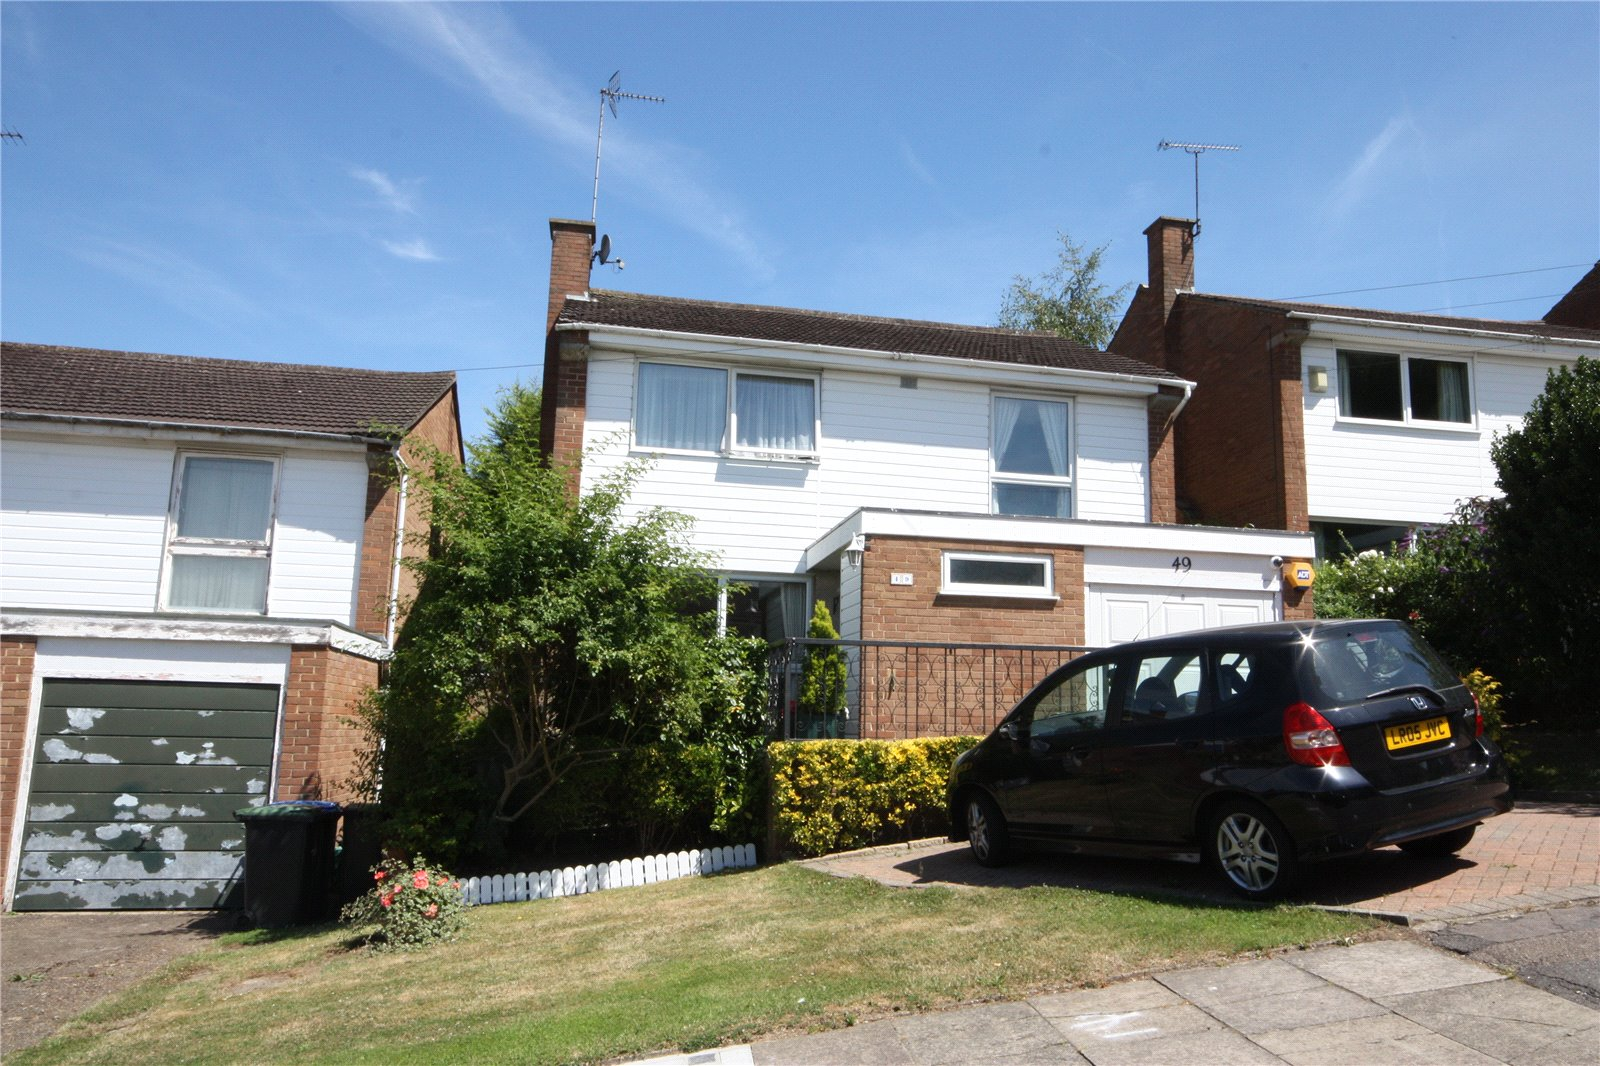 4 Bedrooms Detached House for sale in Chase Ridings Enfield Middlesex EN2